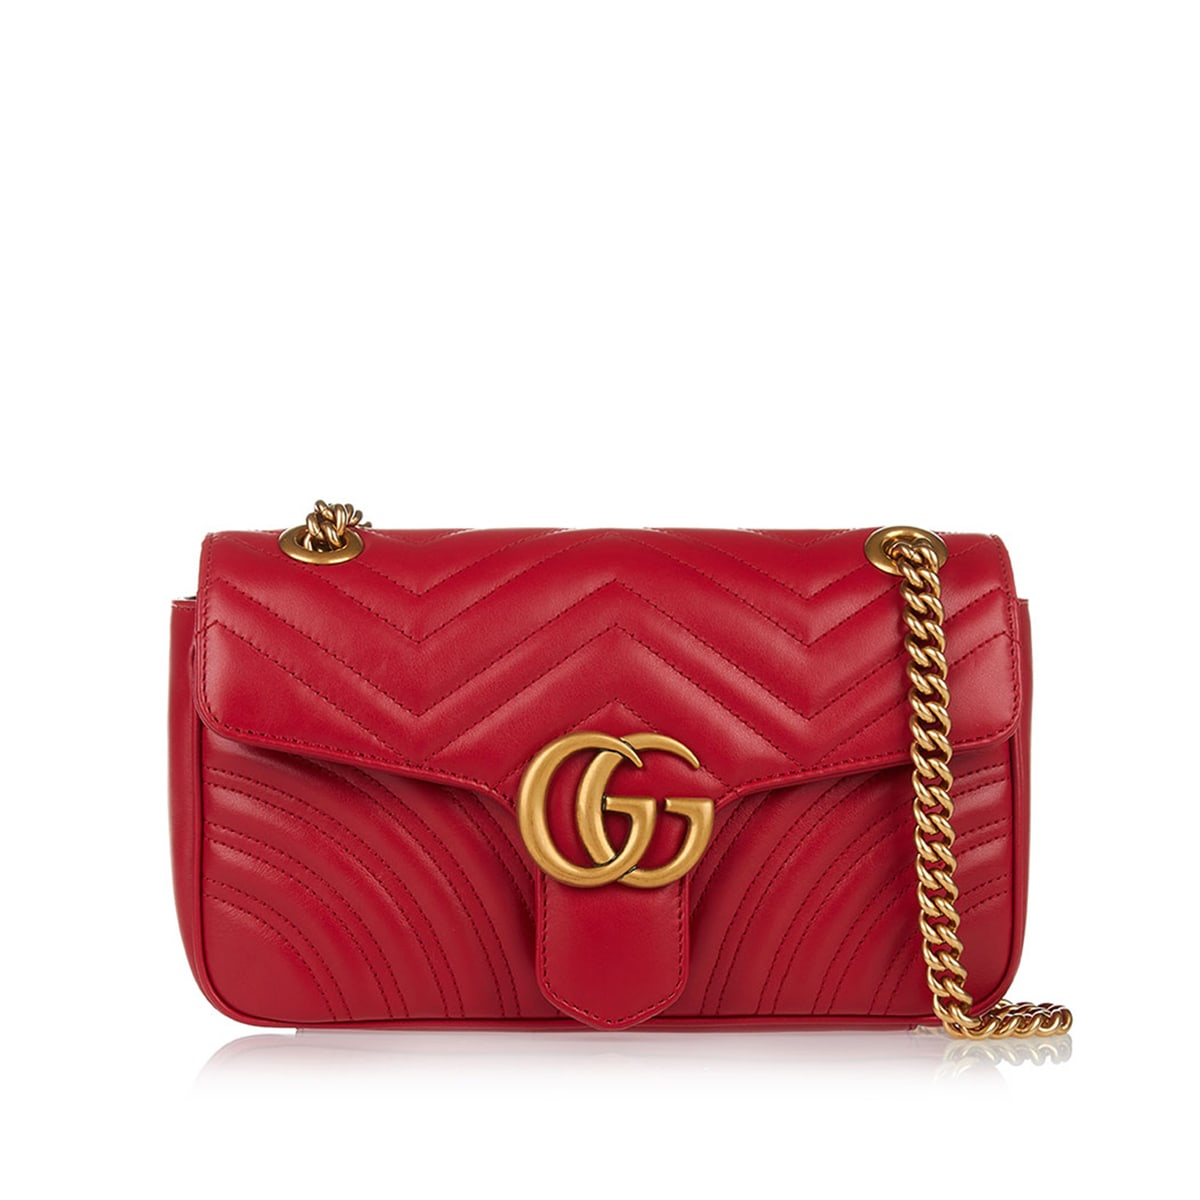 c68dc79f1ee GG MARMONT SMALL MATELASSE SHOULDER BAG